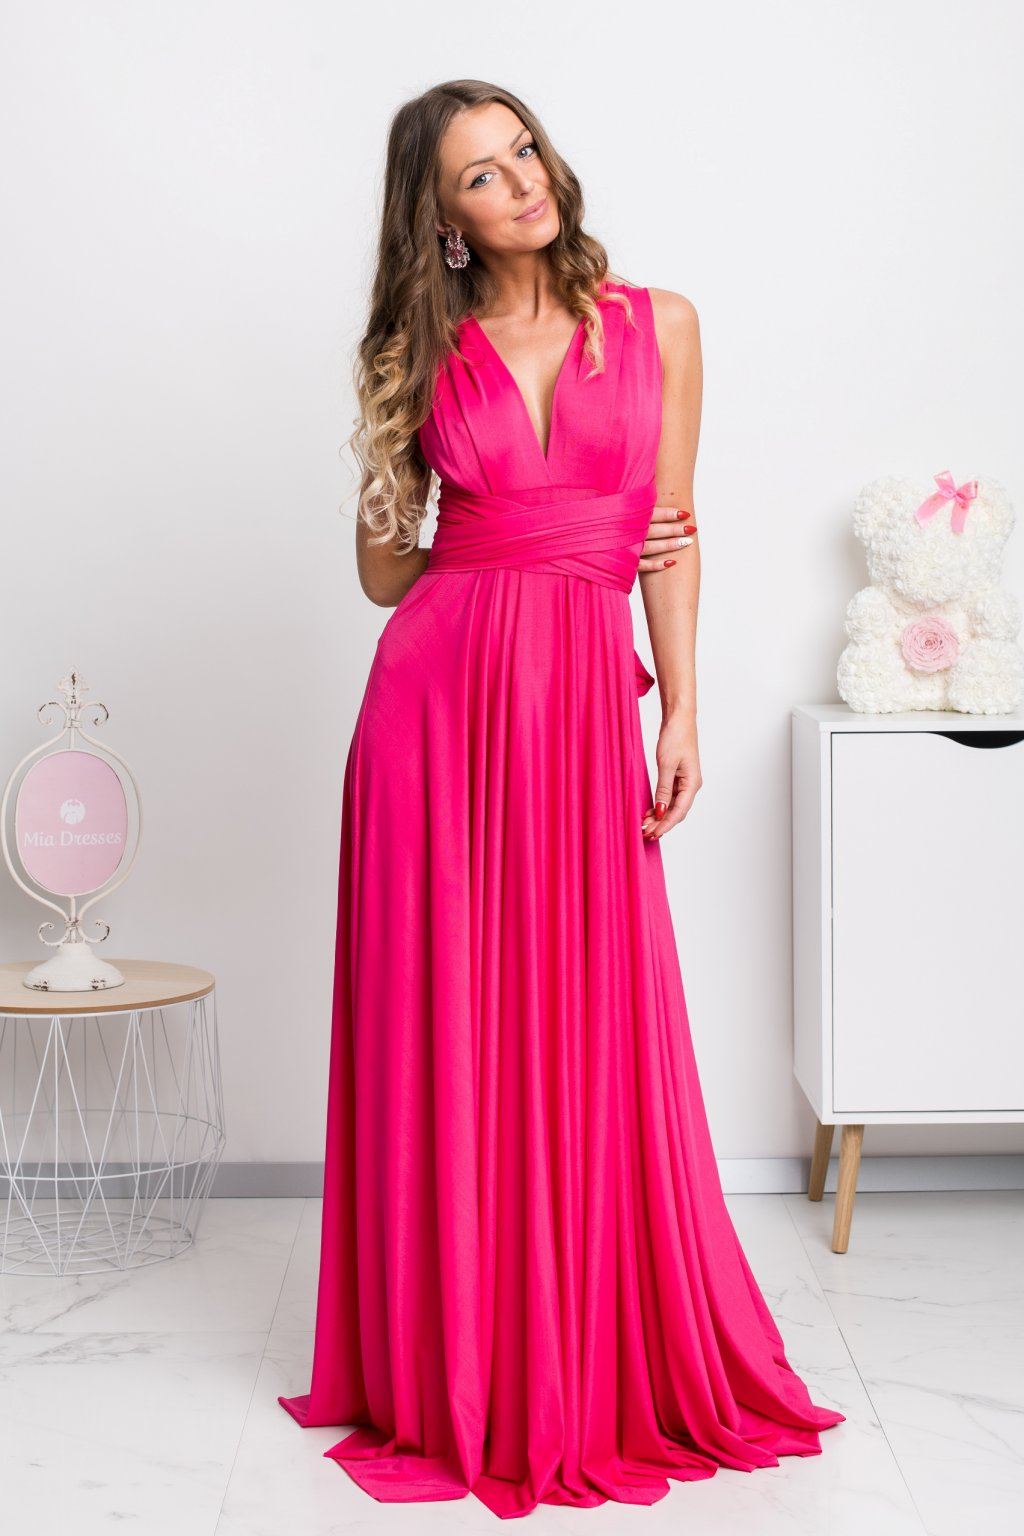 Cyclamen tie formal dress